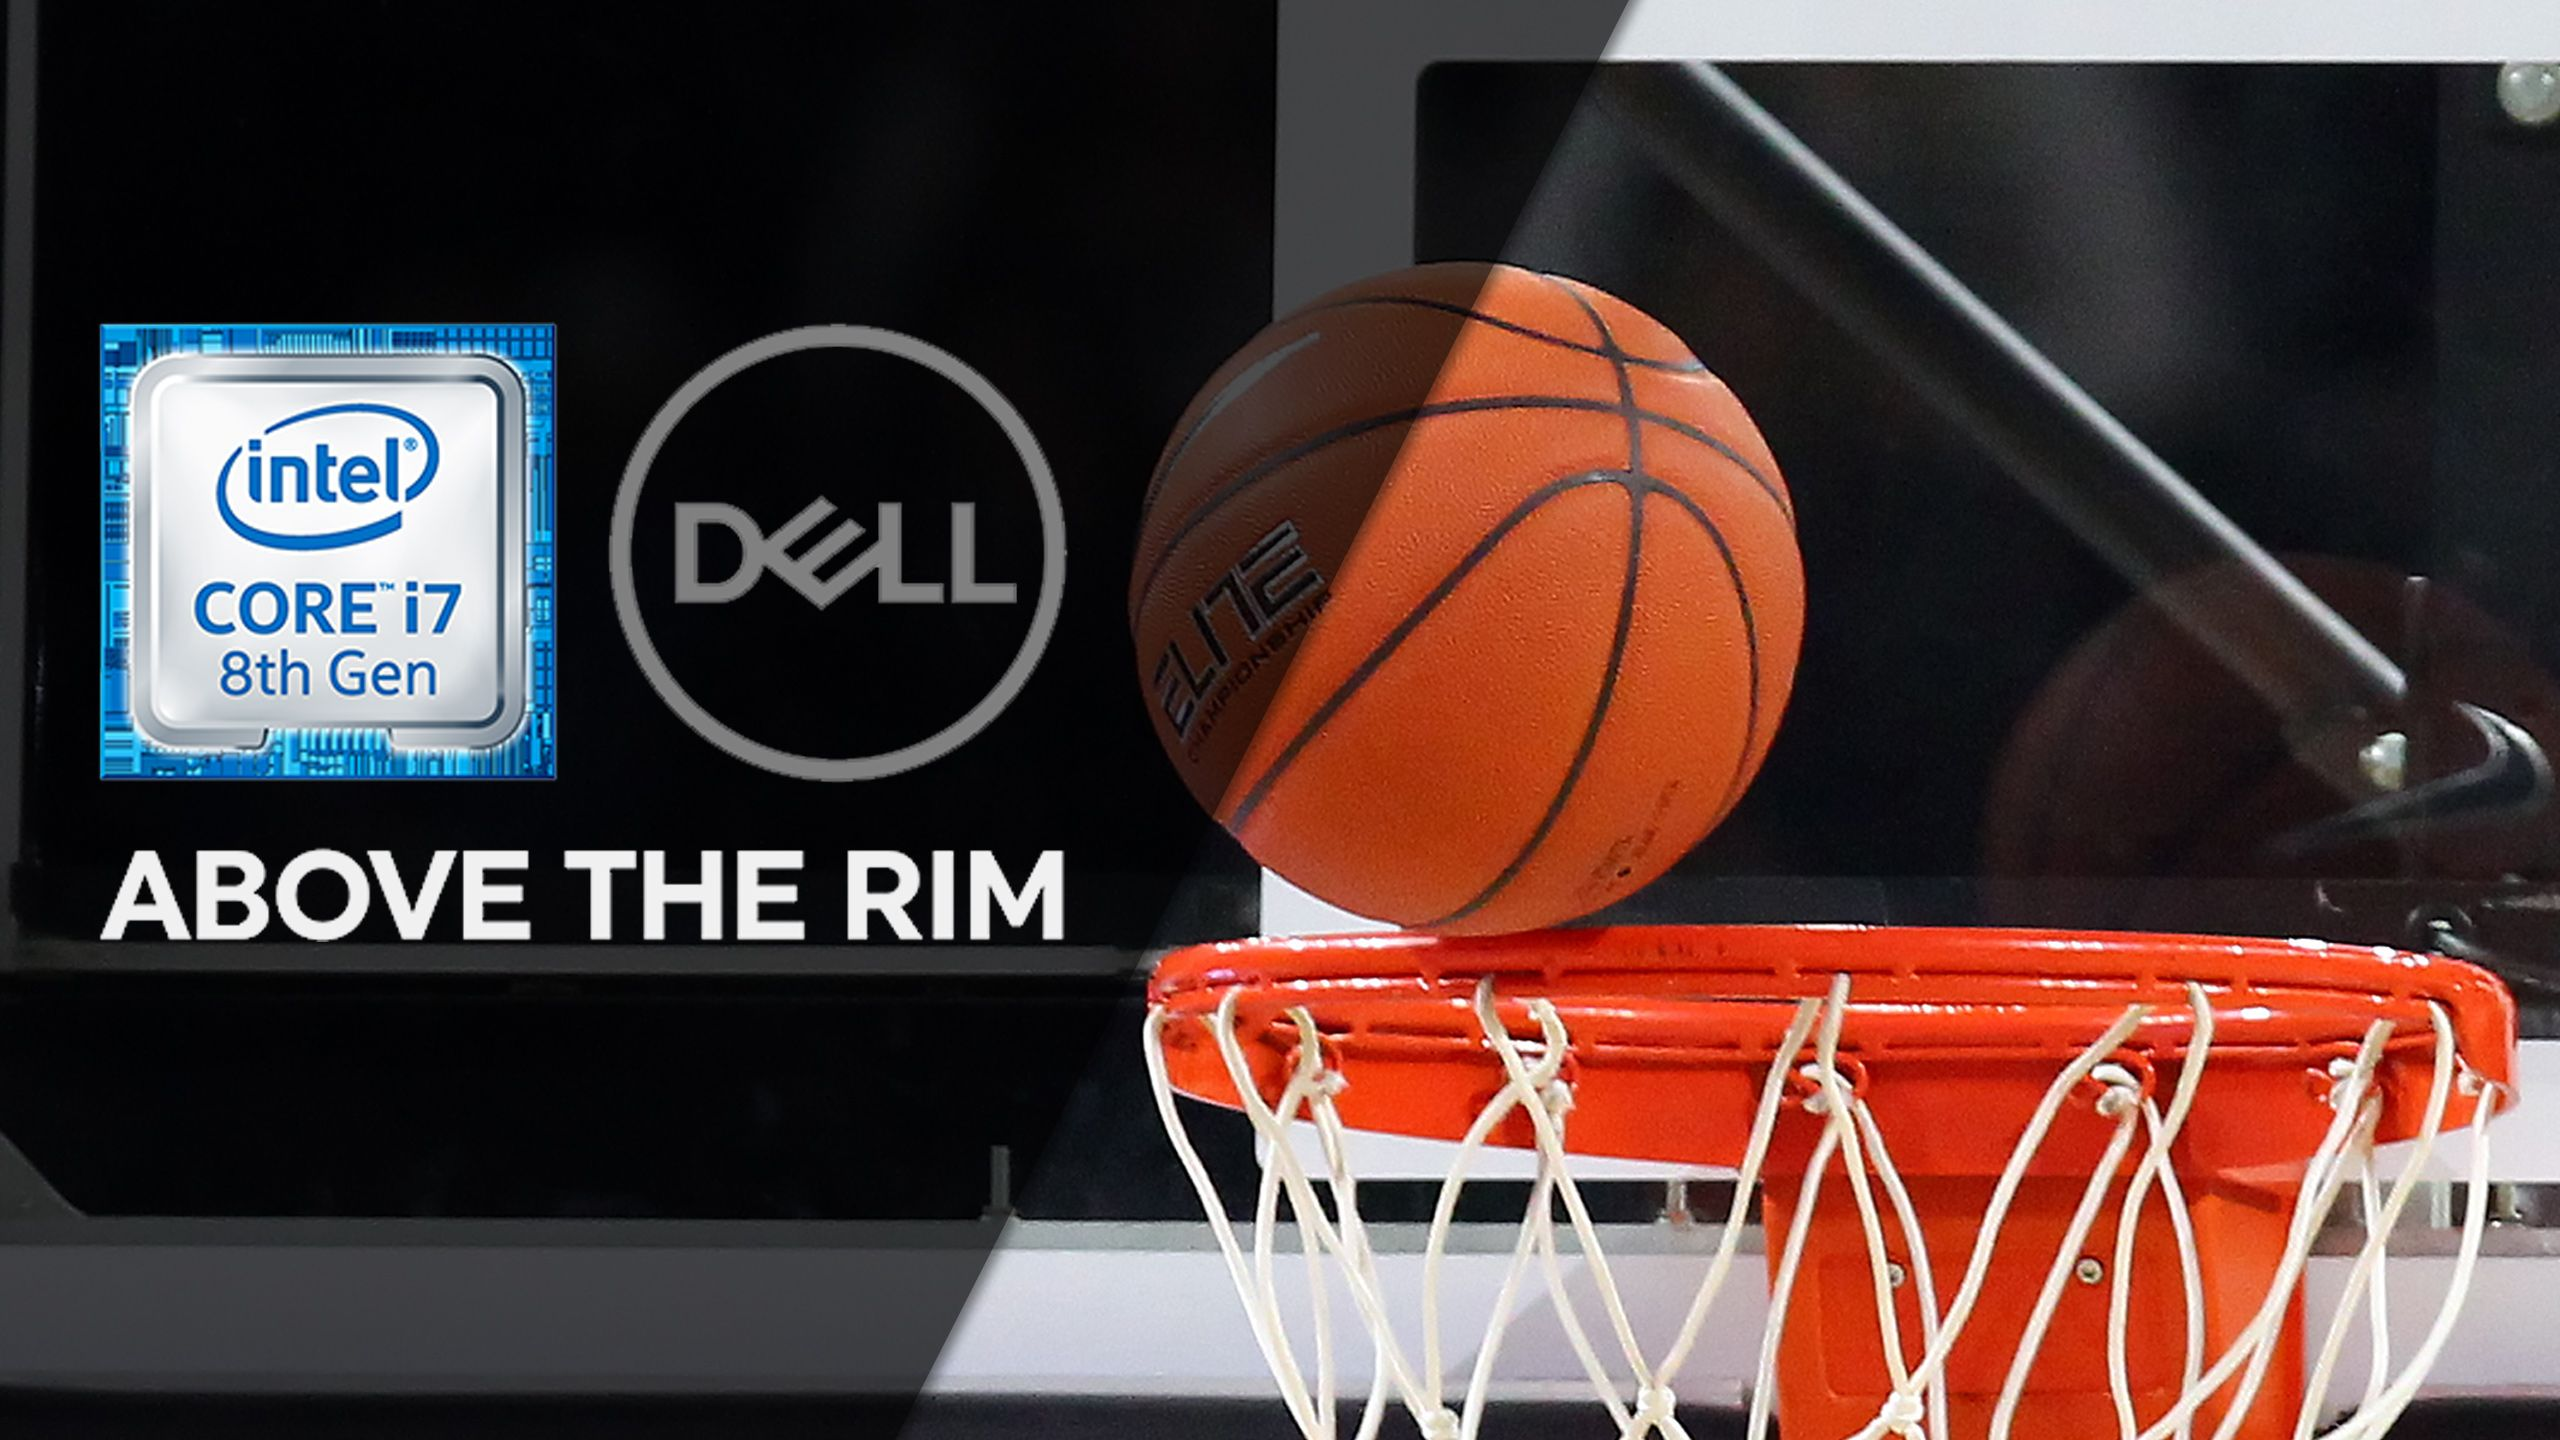 Dell Above the Rim - Oklahoma vs. #8 Kansas (M Basketball)